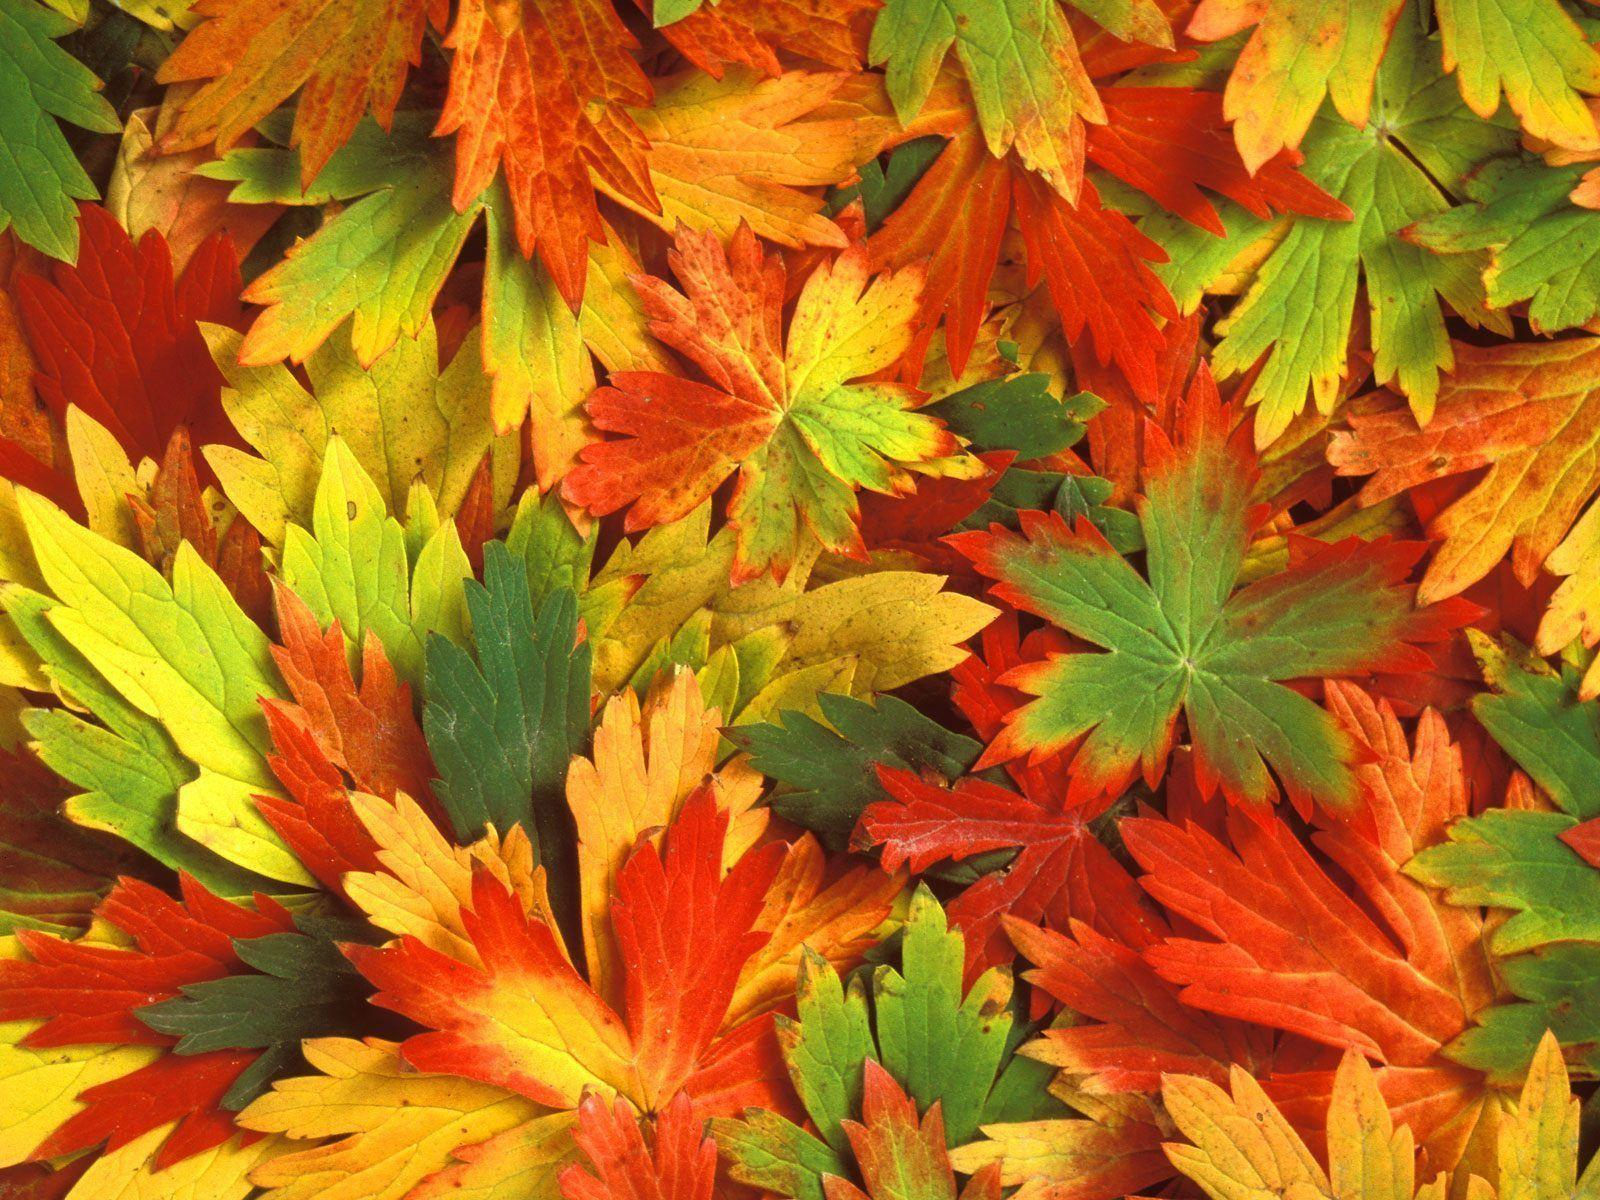 Fall Wallpapers For Desktop 9703 Wallpapers HD | colourinwallpaper.